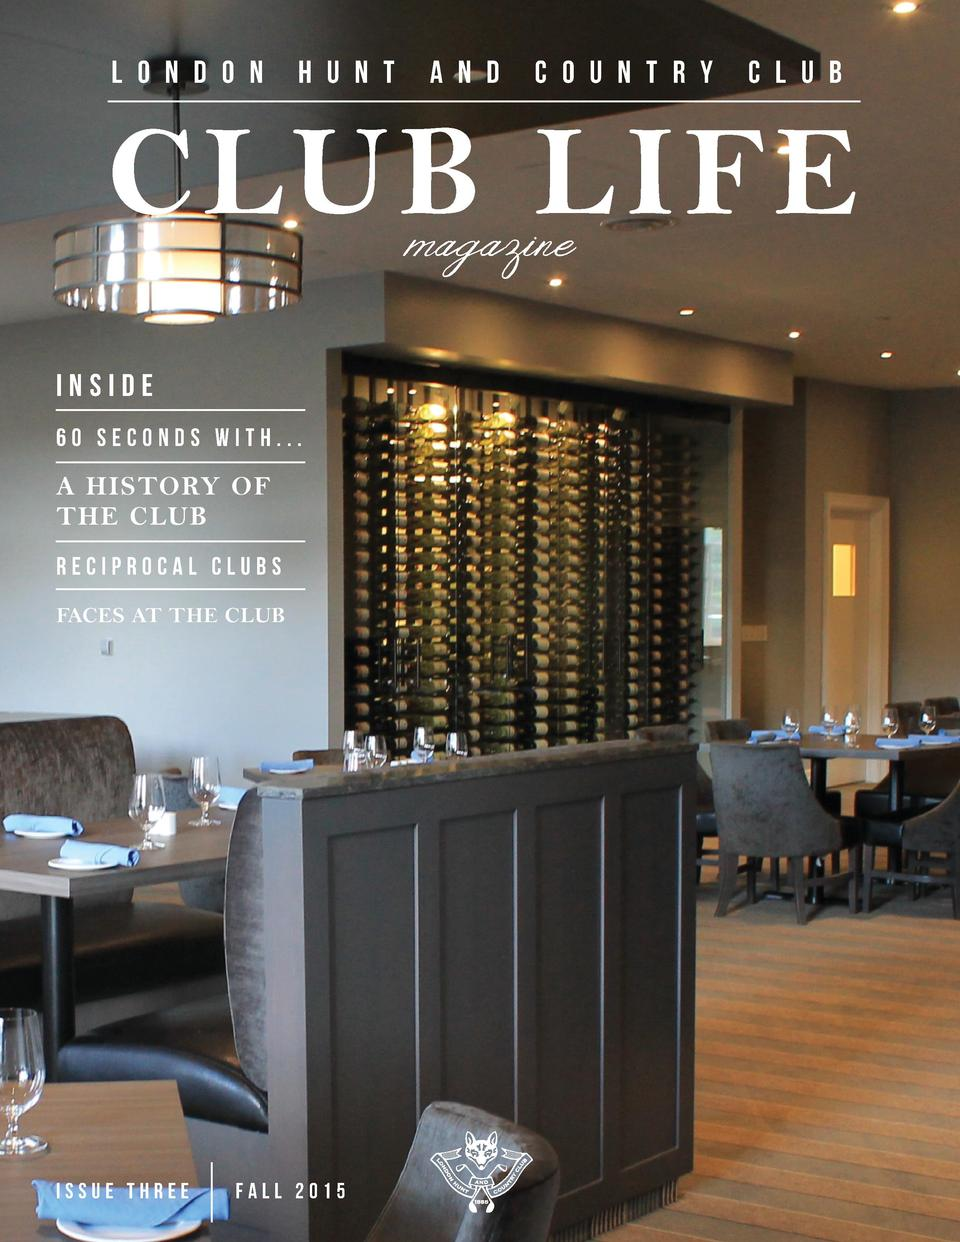 L O N D O N  H U N T  A N D  C O U N T R Y  C L U B  CLUB LIFE magazine  INSIDE 60 seconds with...  A HISTORY OF THE CLUB ...